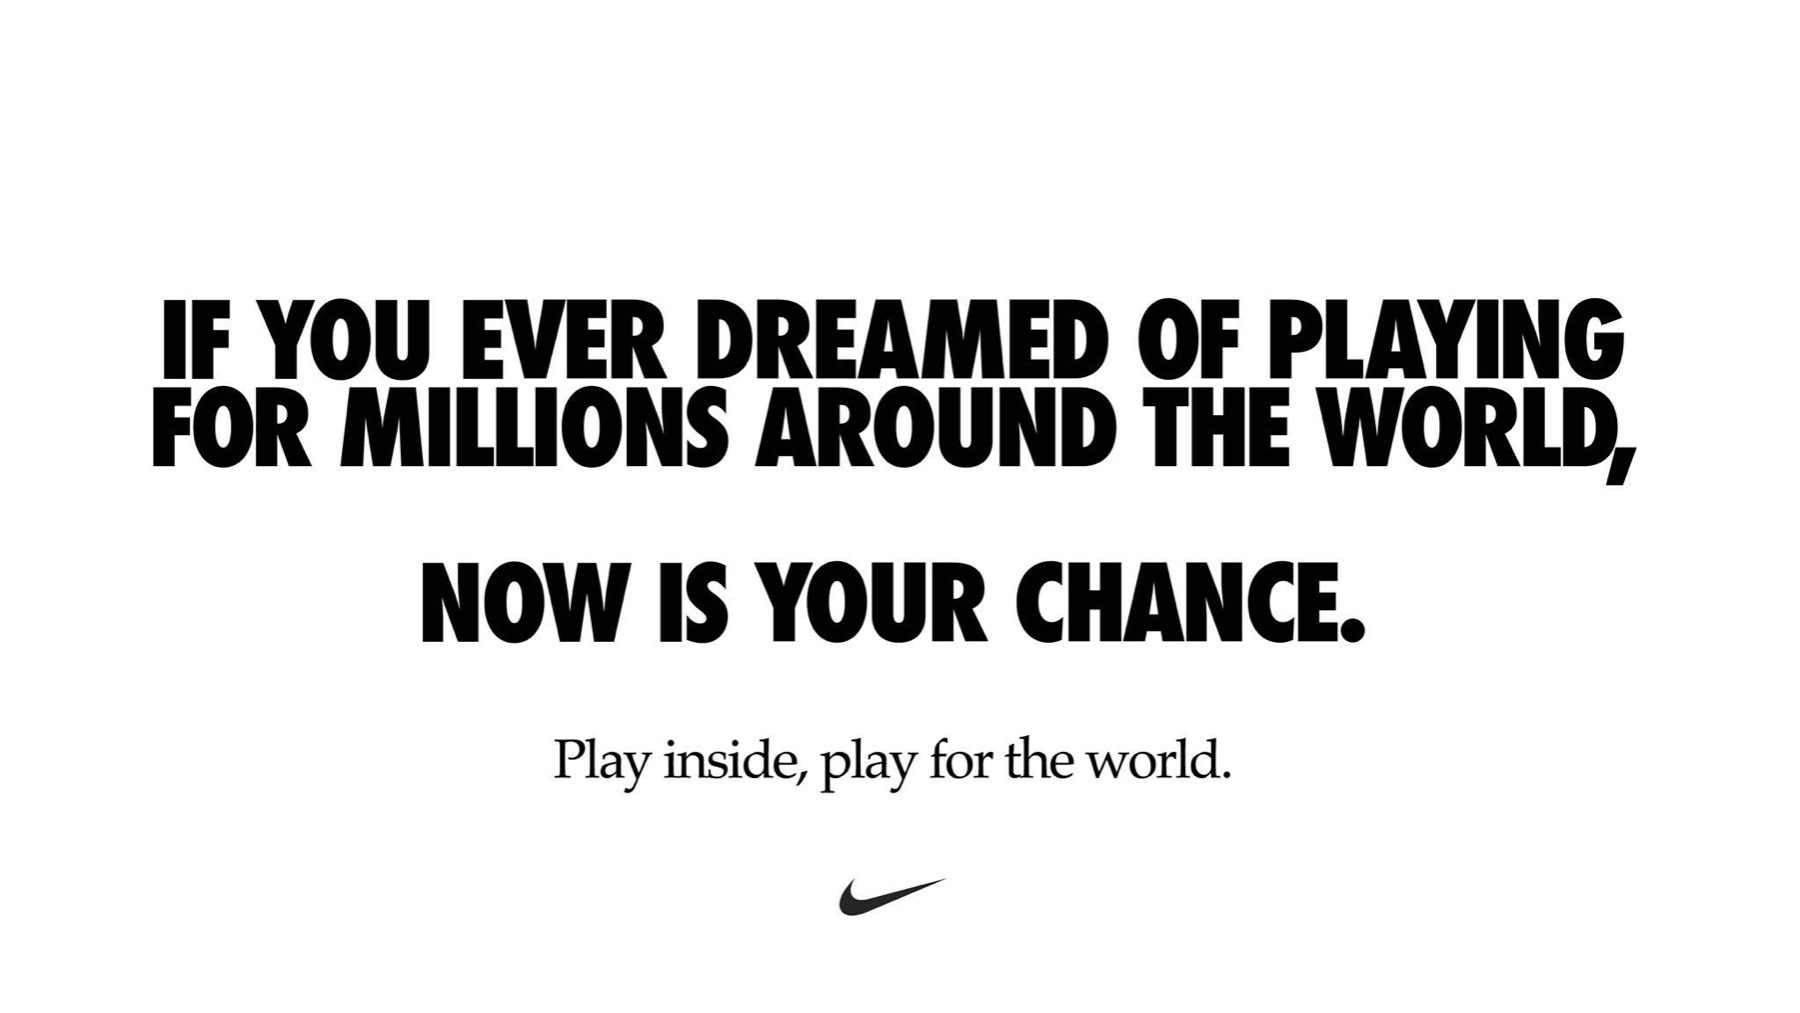 Play inside, play for the world